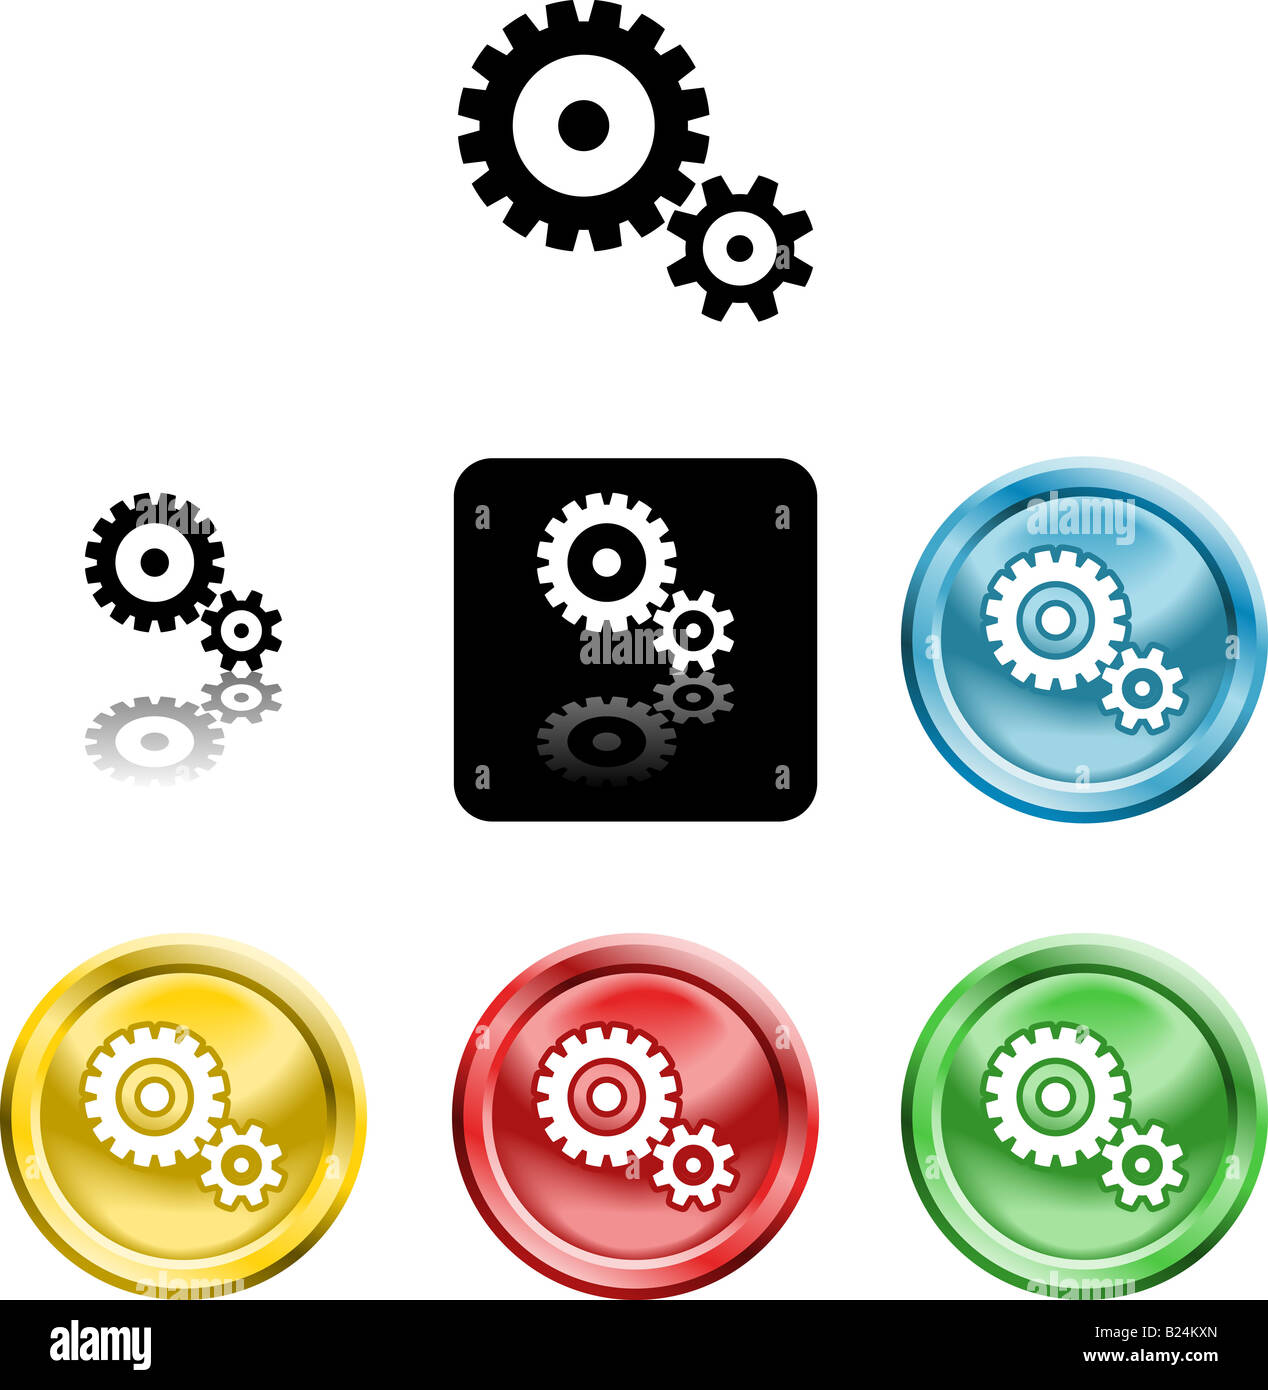 Several versions of an icon symbol of stylised cog gears - Stock Image